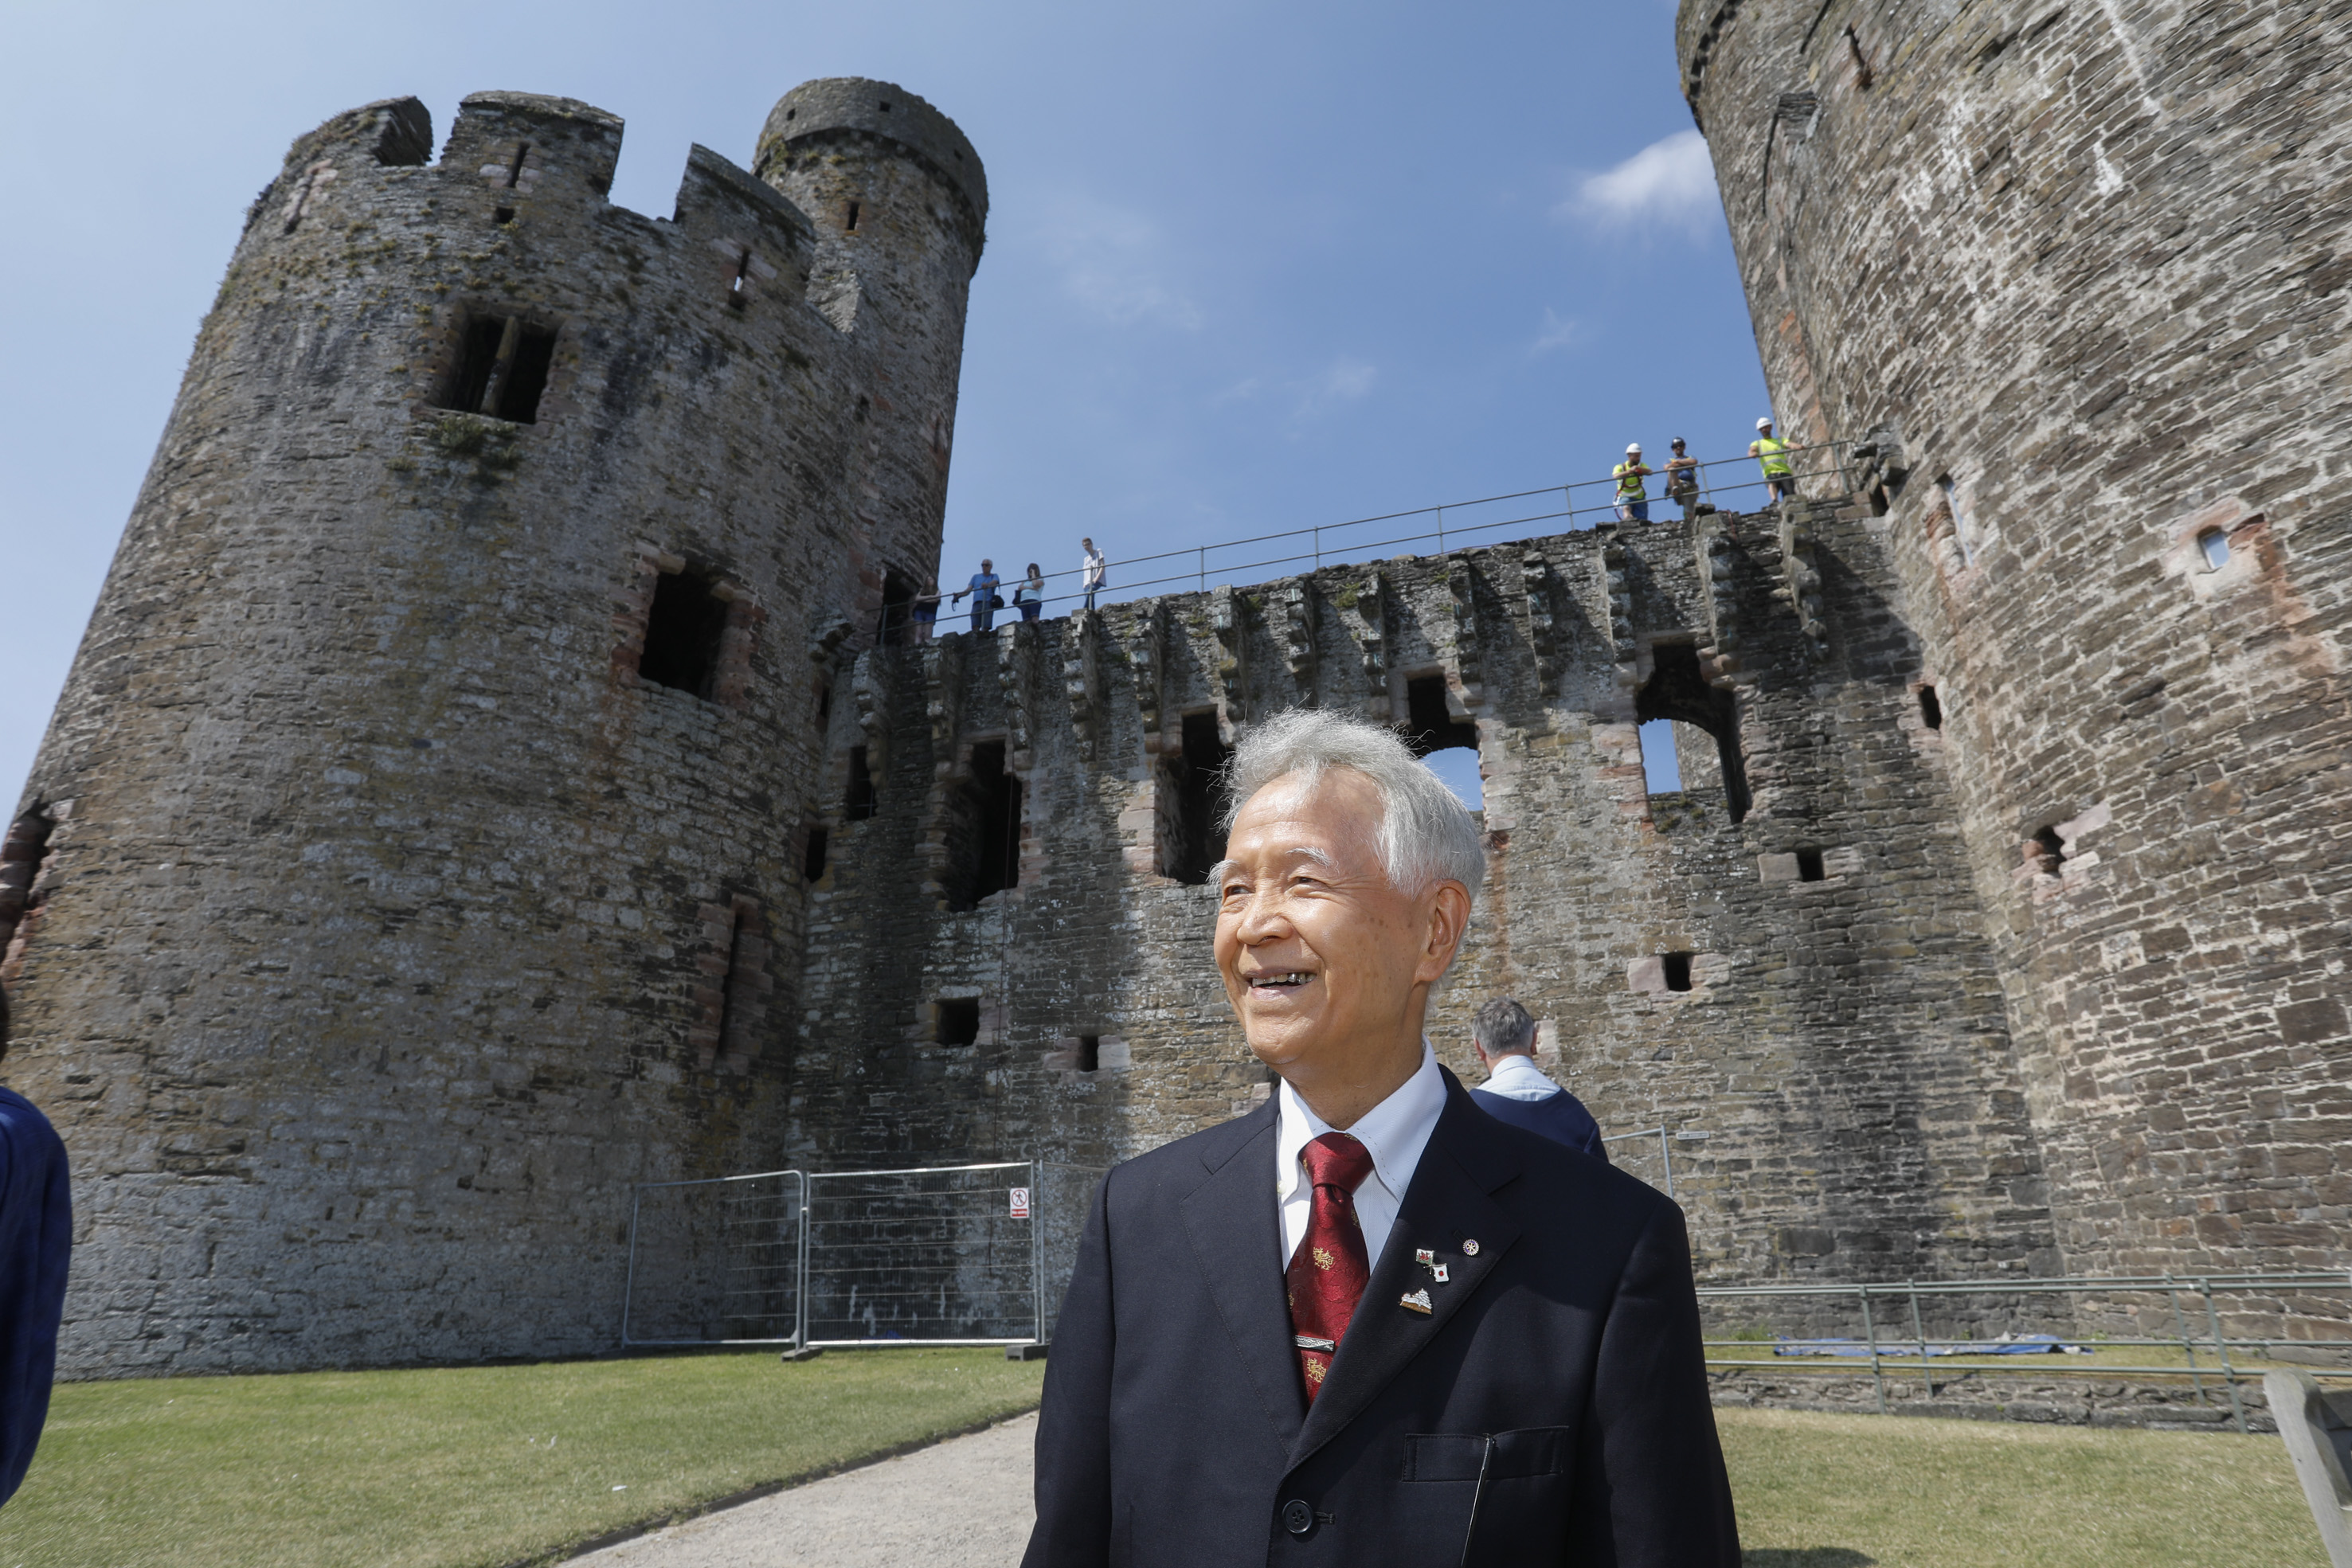 Pictured  Mayor of Himeji, Toshikatsu Iwami  at Conwy Castle.